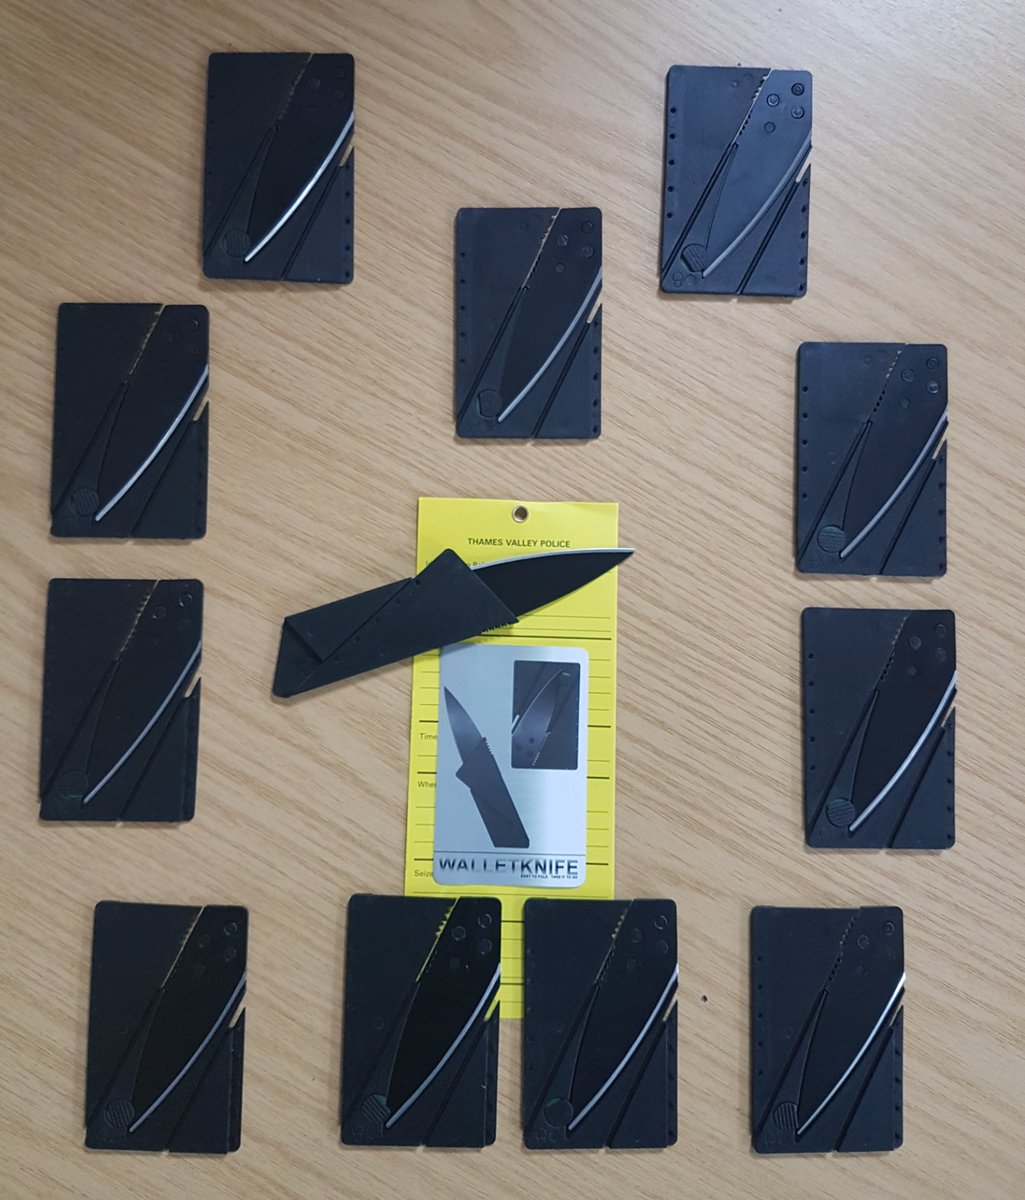 Police confiscate illegally smuggled credit card knives